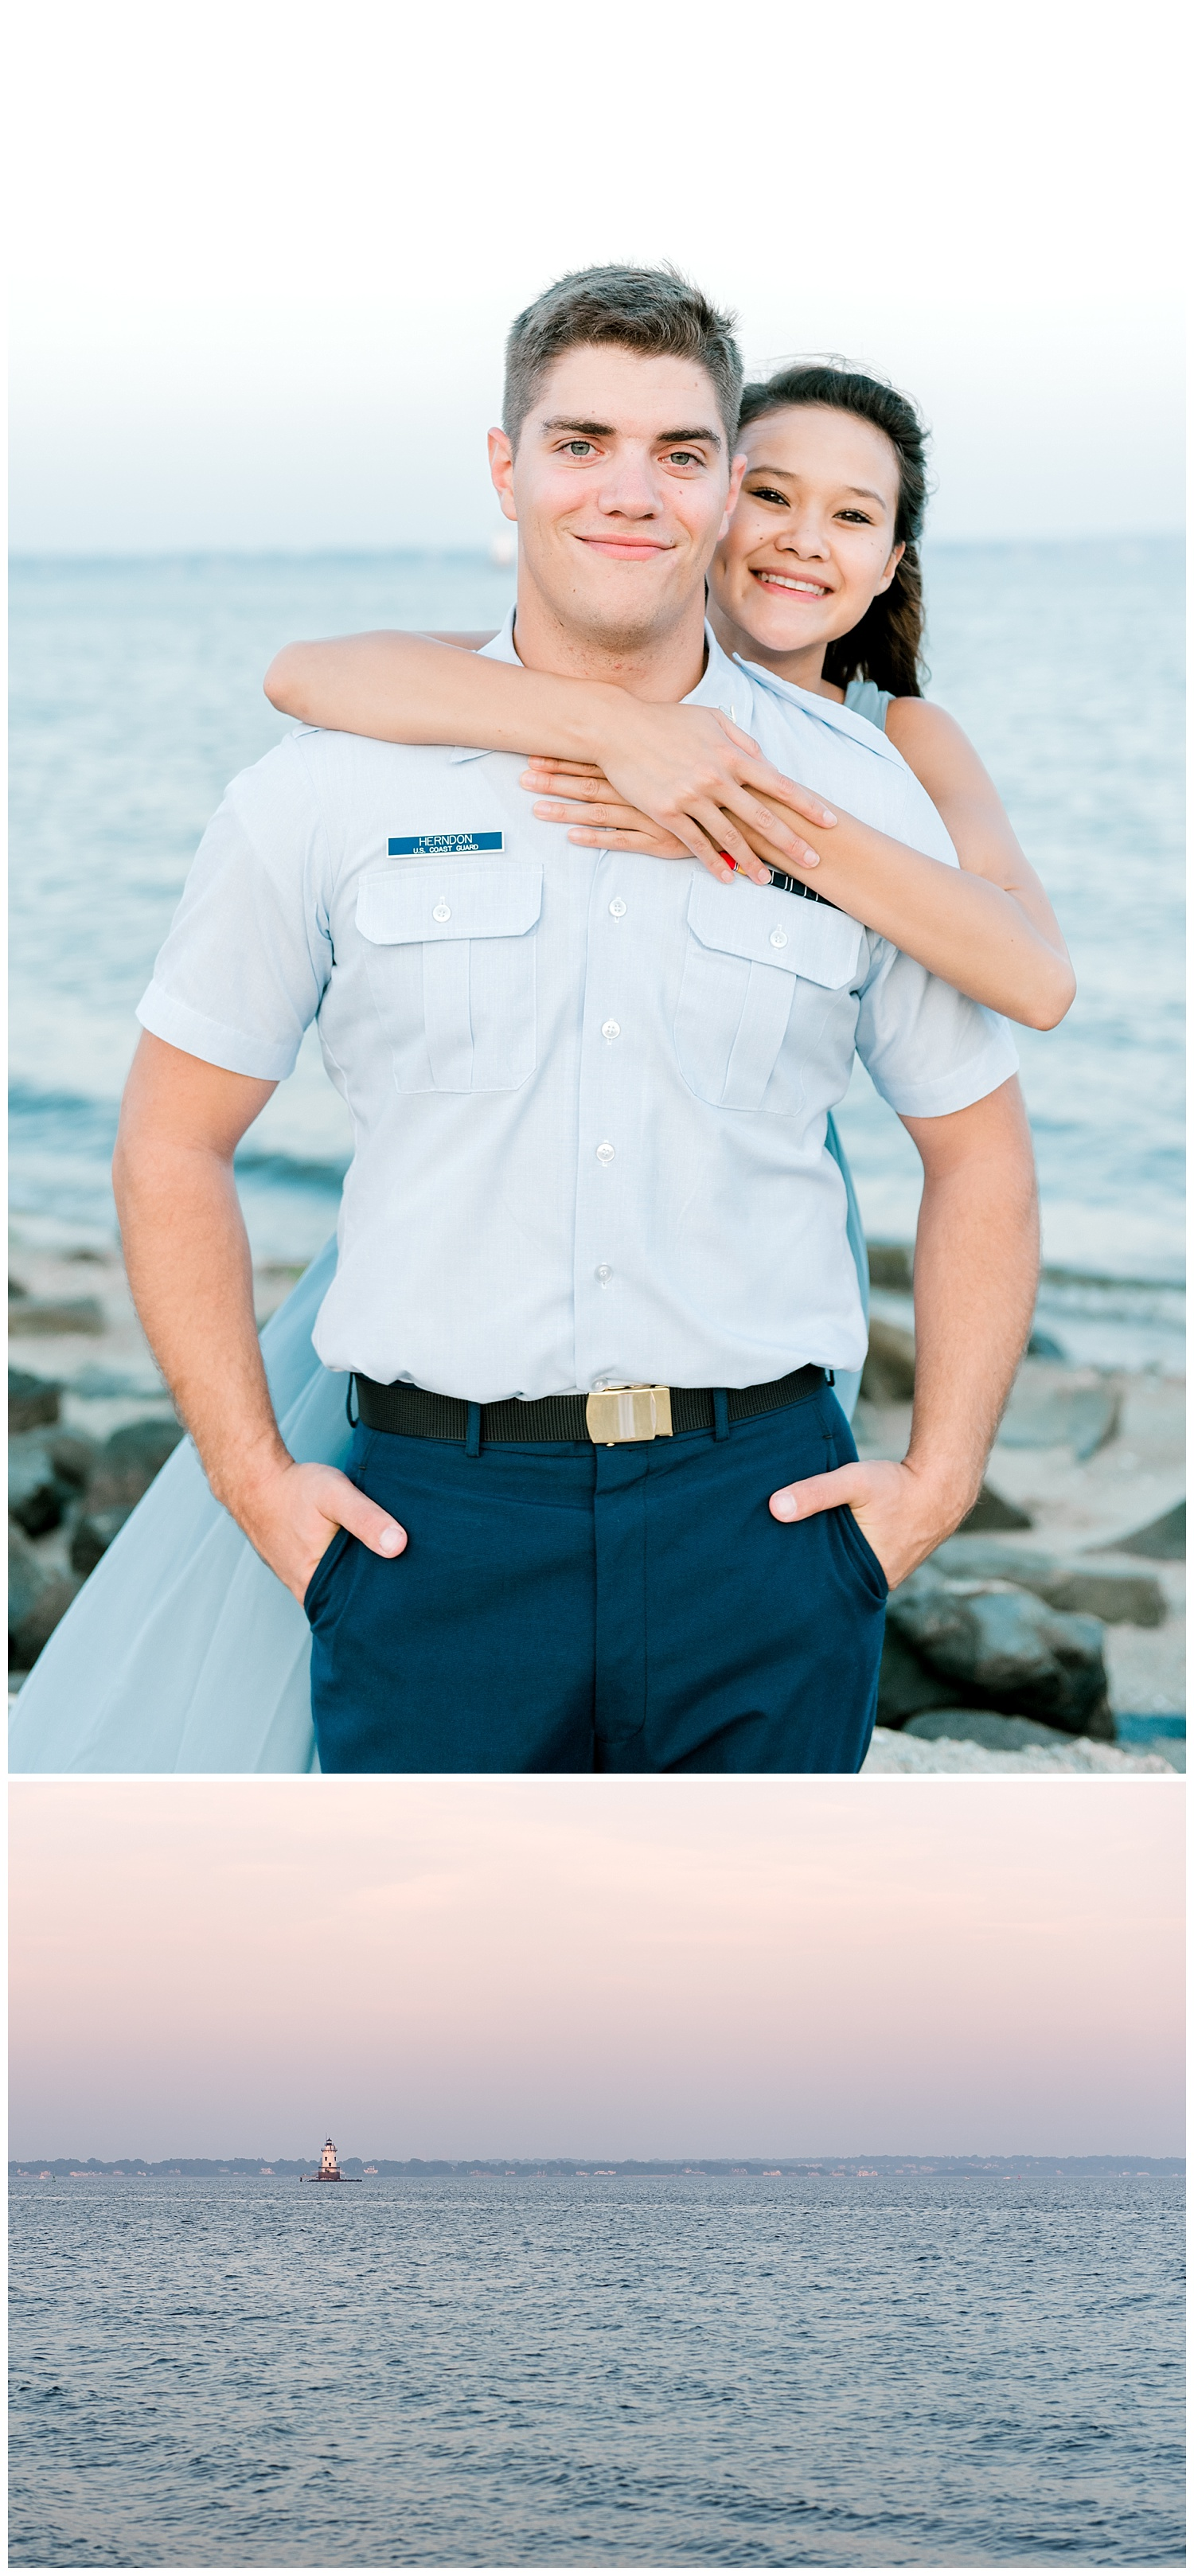 august18-rhode-island-engagement-photography-field-couples-portraits-beach-warwick-RI-15.jpg